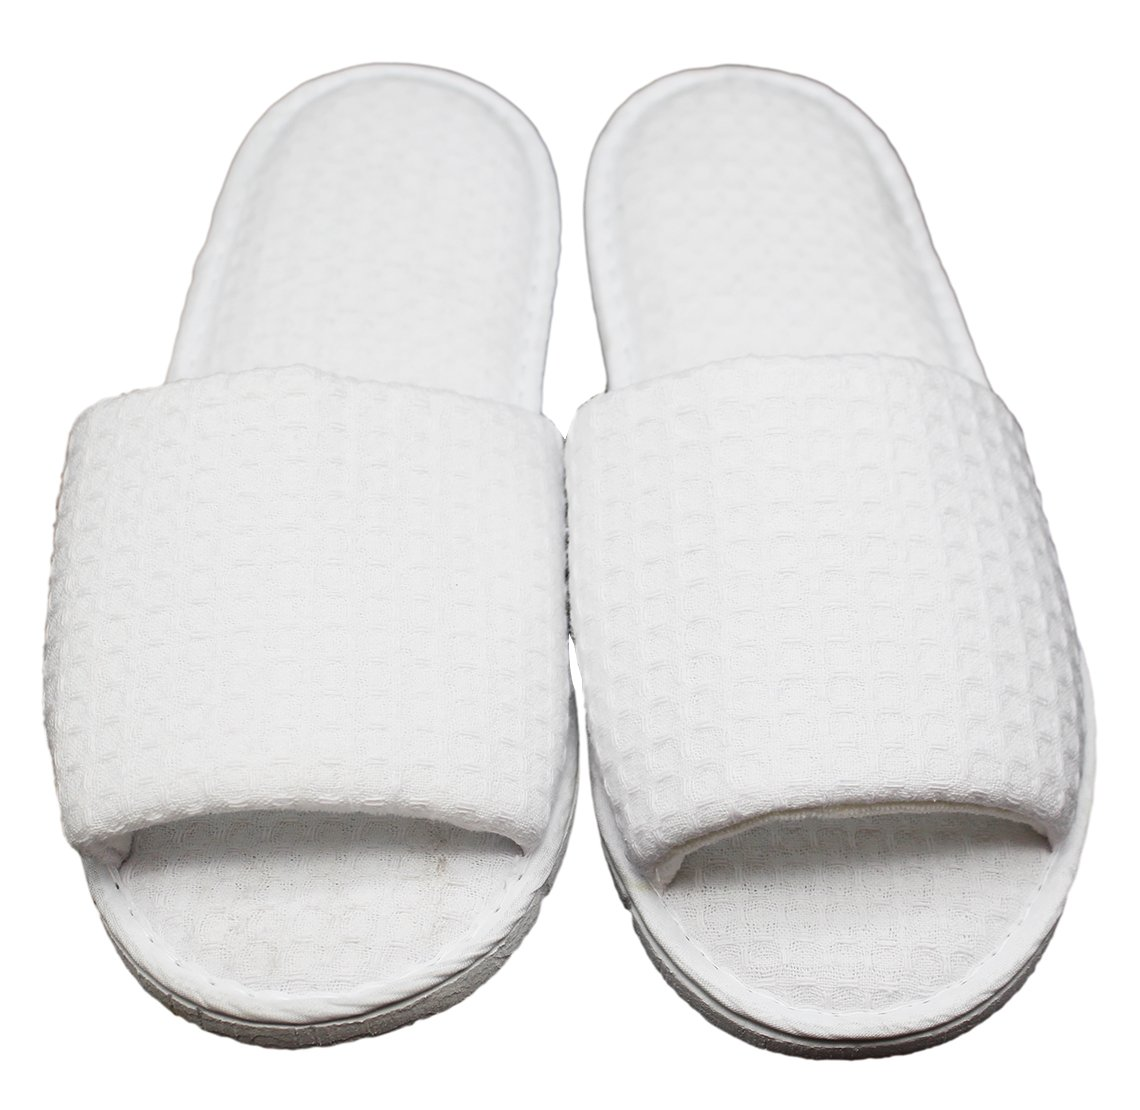 2020 Good Quality Hot Sale Hotel Spa Slippers Waffle open Toe Home Guest Slippers